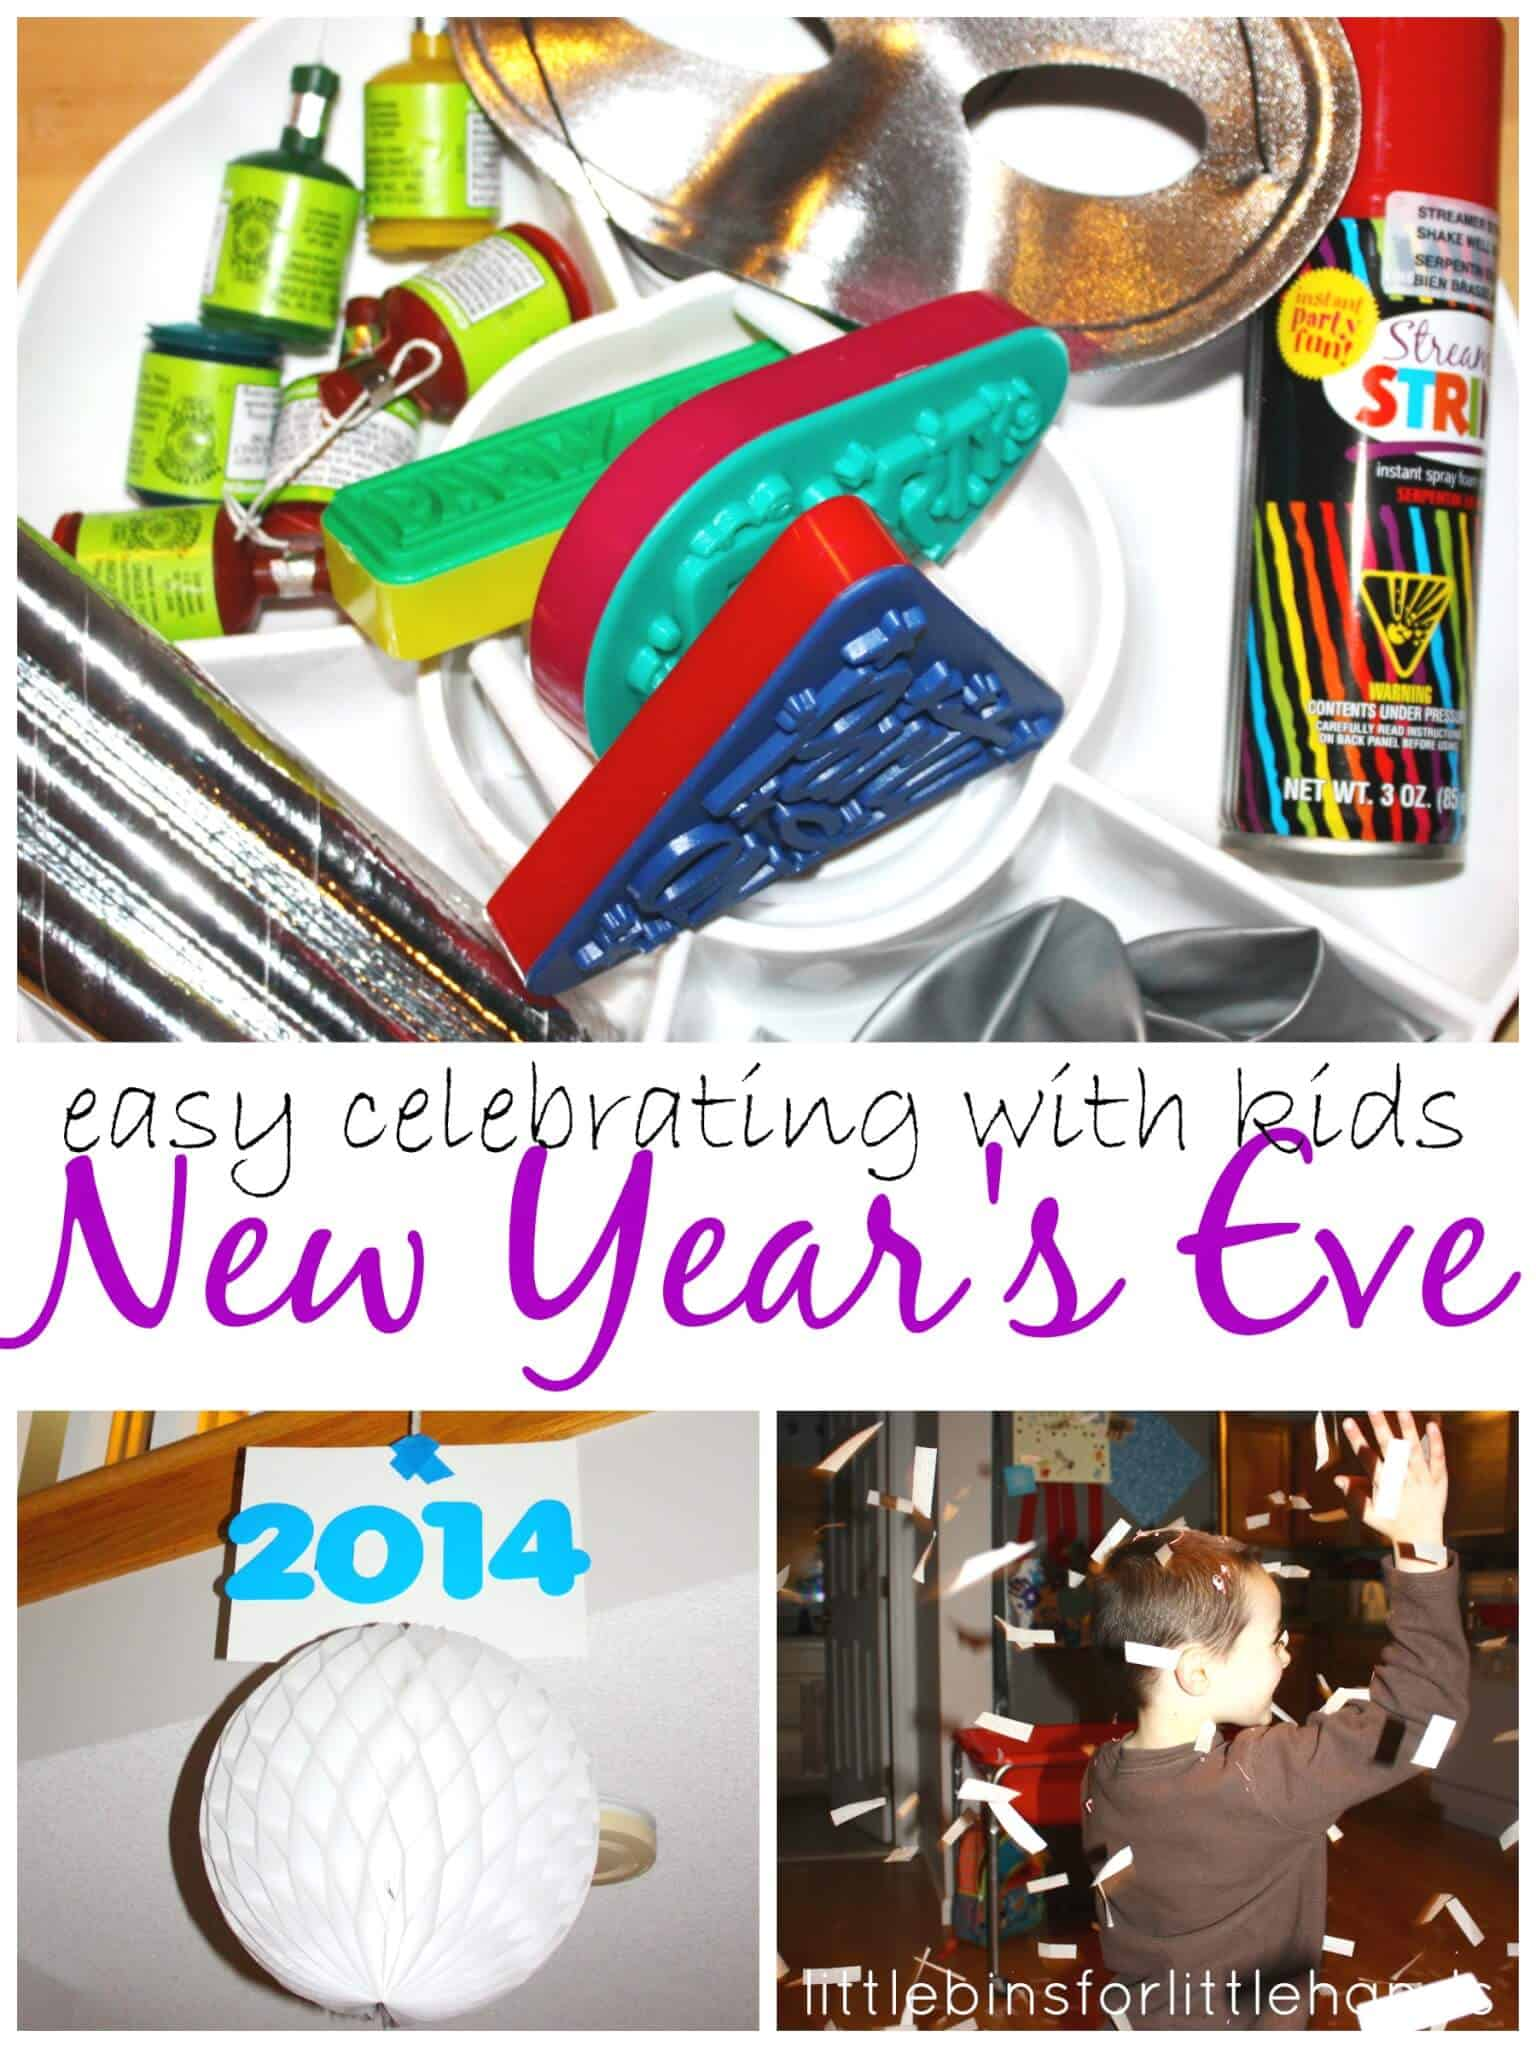 New Years Eve Activities and Party Ideas for Kids